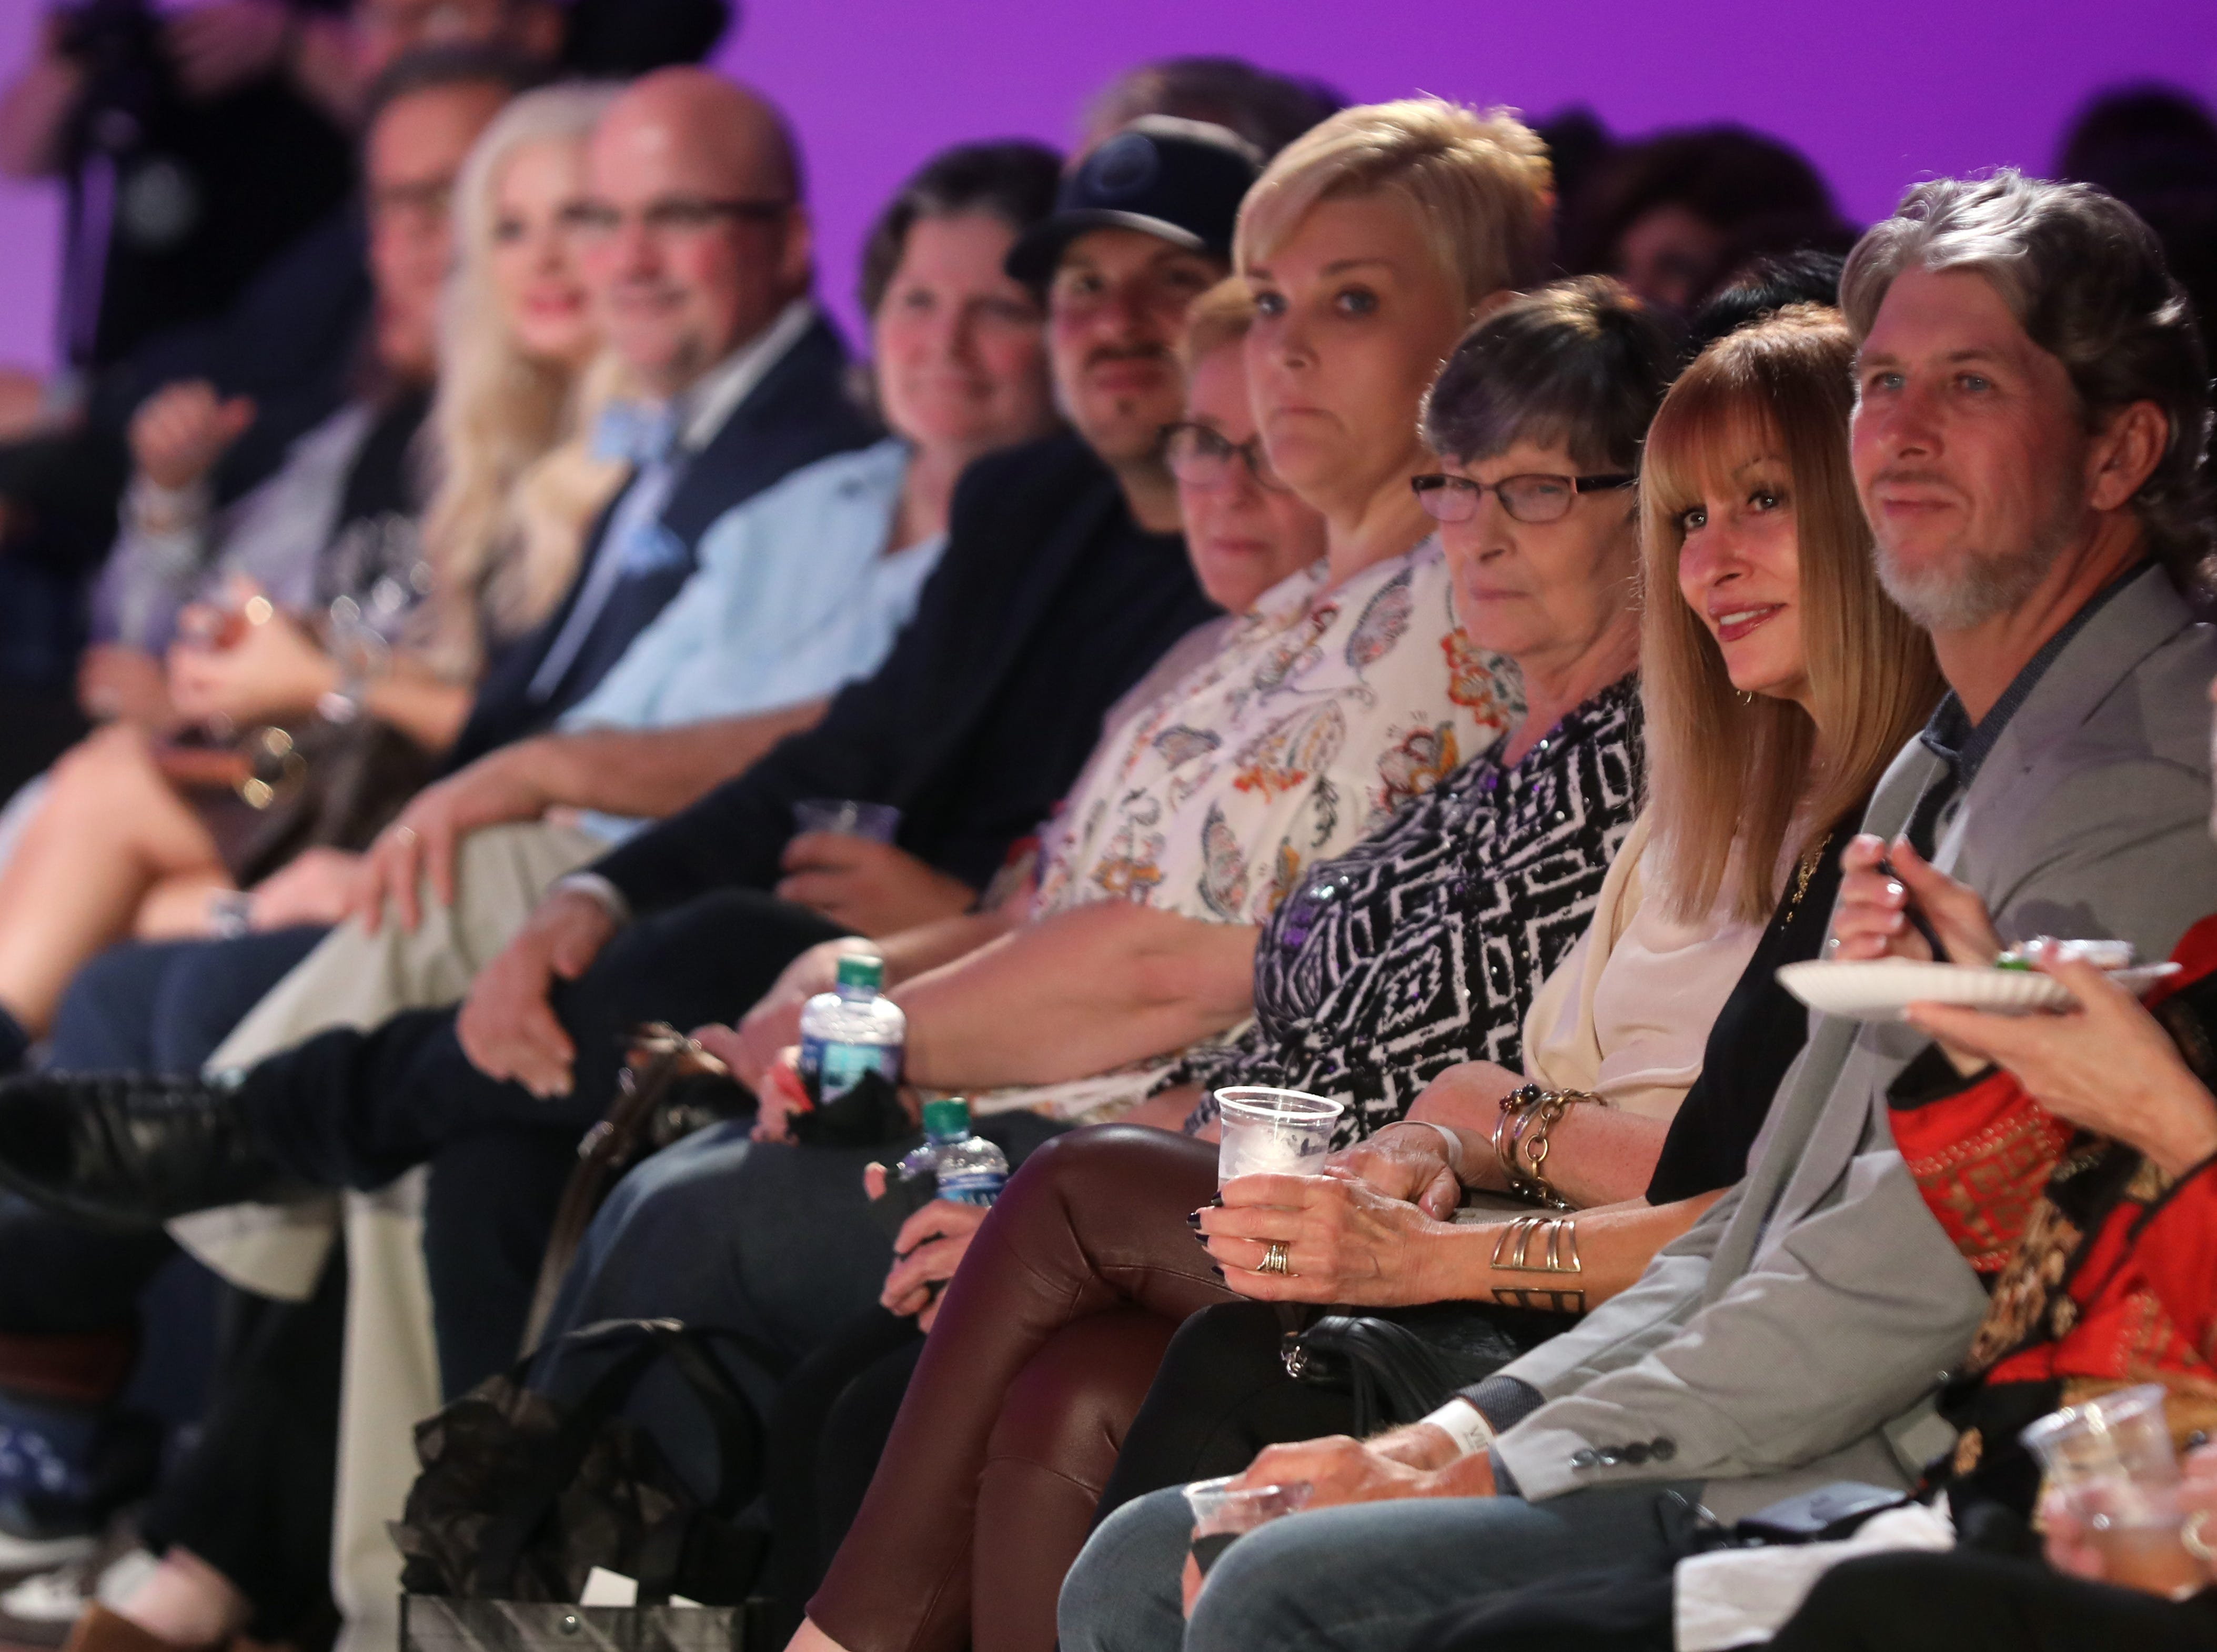 Audience members listen to Boundless 2018 organizer Alicia Searcy speak before the start of the fashion show at Studio 615 on Saturday, September 8, 2018.